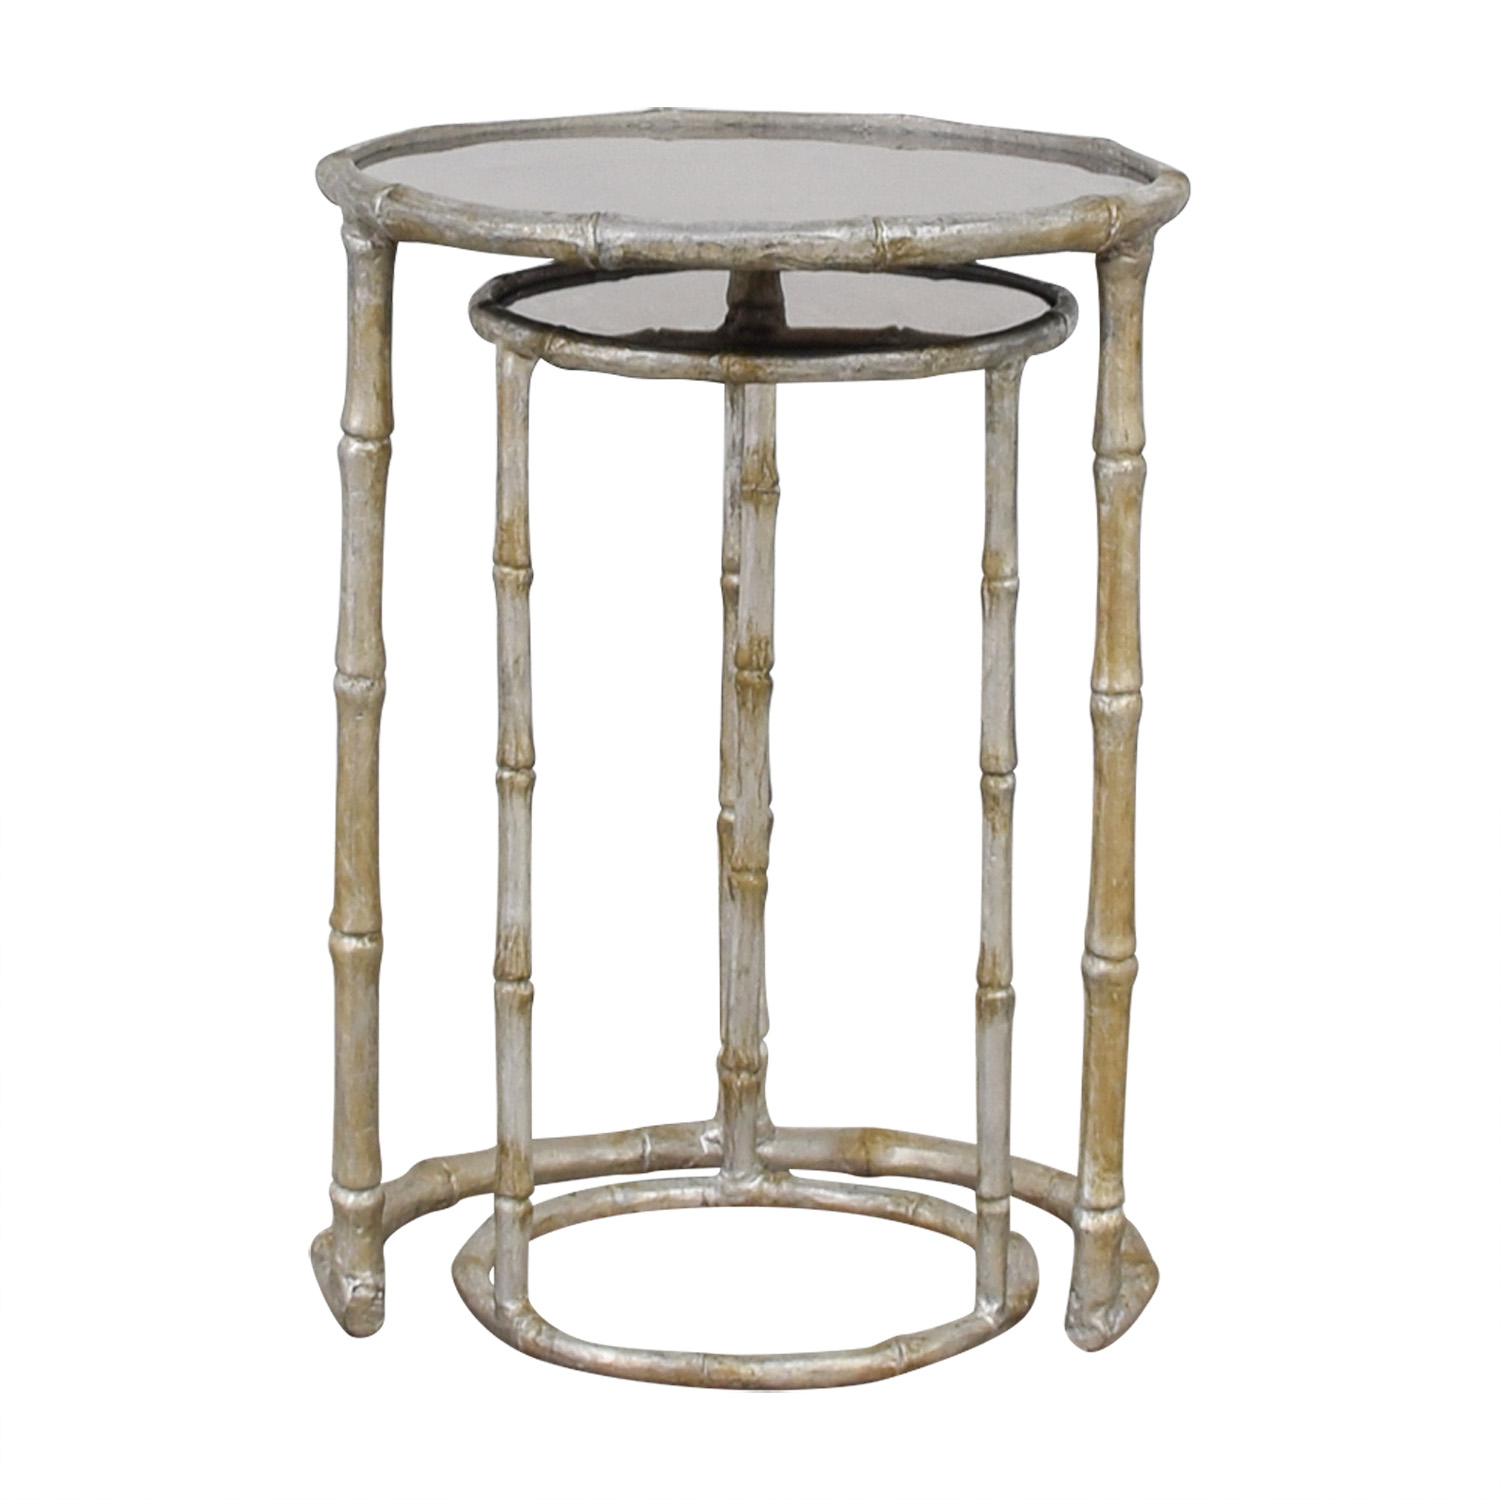 Millie Raes Millie Raes Bamboo Round Mirrored Nesting Tables Sofas